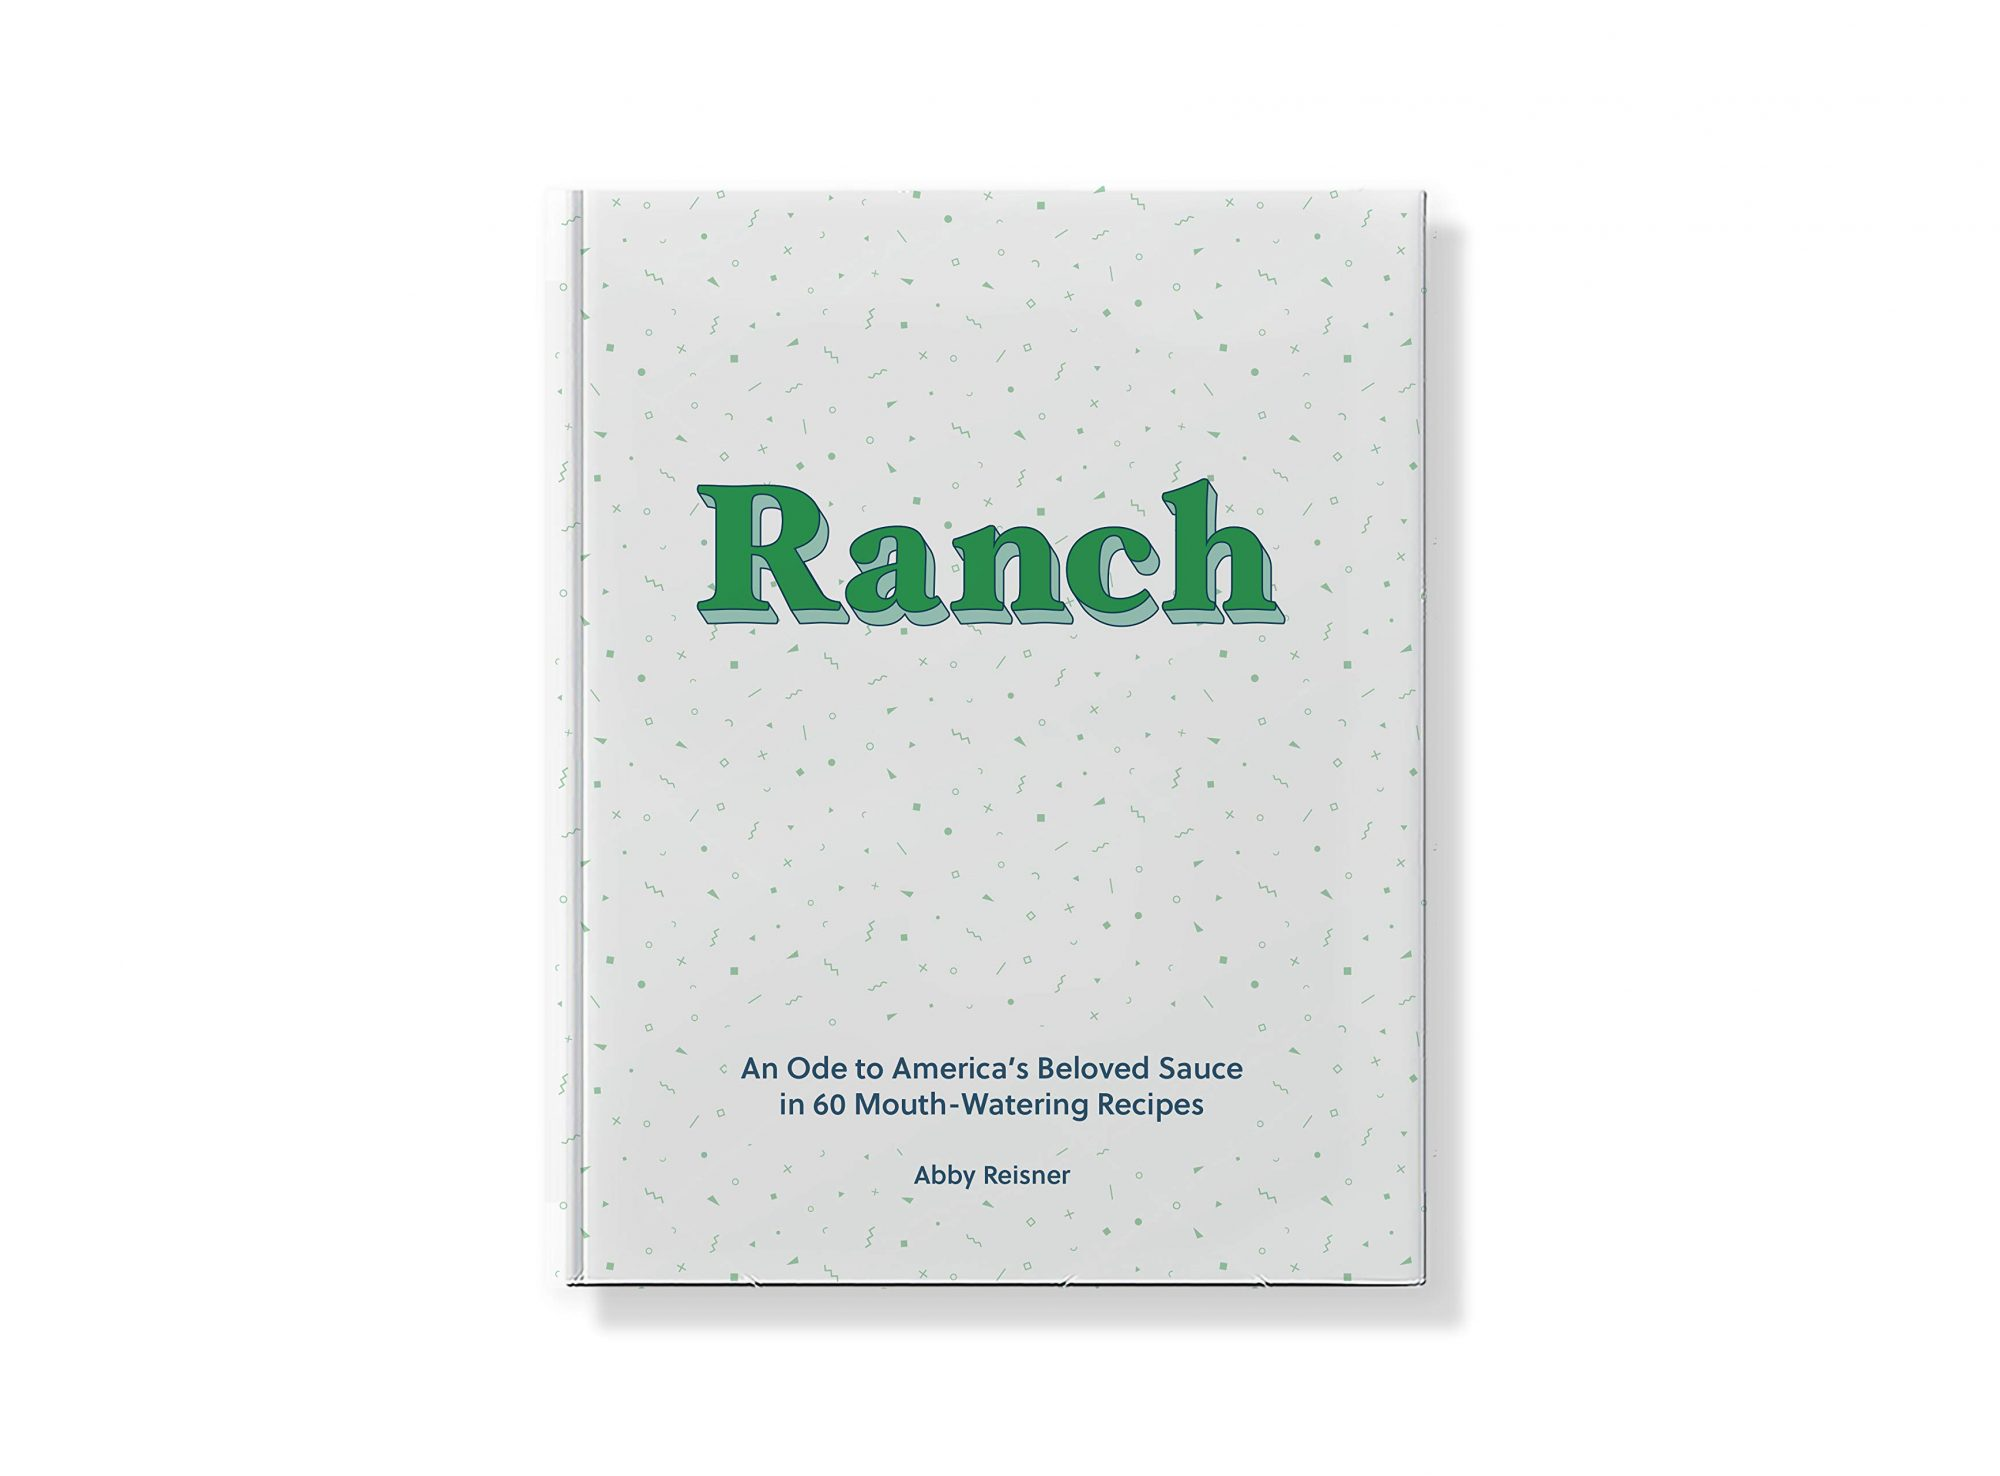 Ranch: An Ode to America's Beloved Sauce in 60 Mouth-Watering Recipes